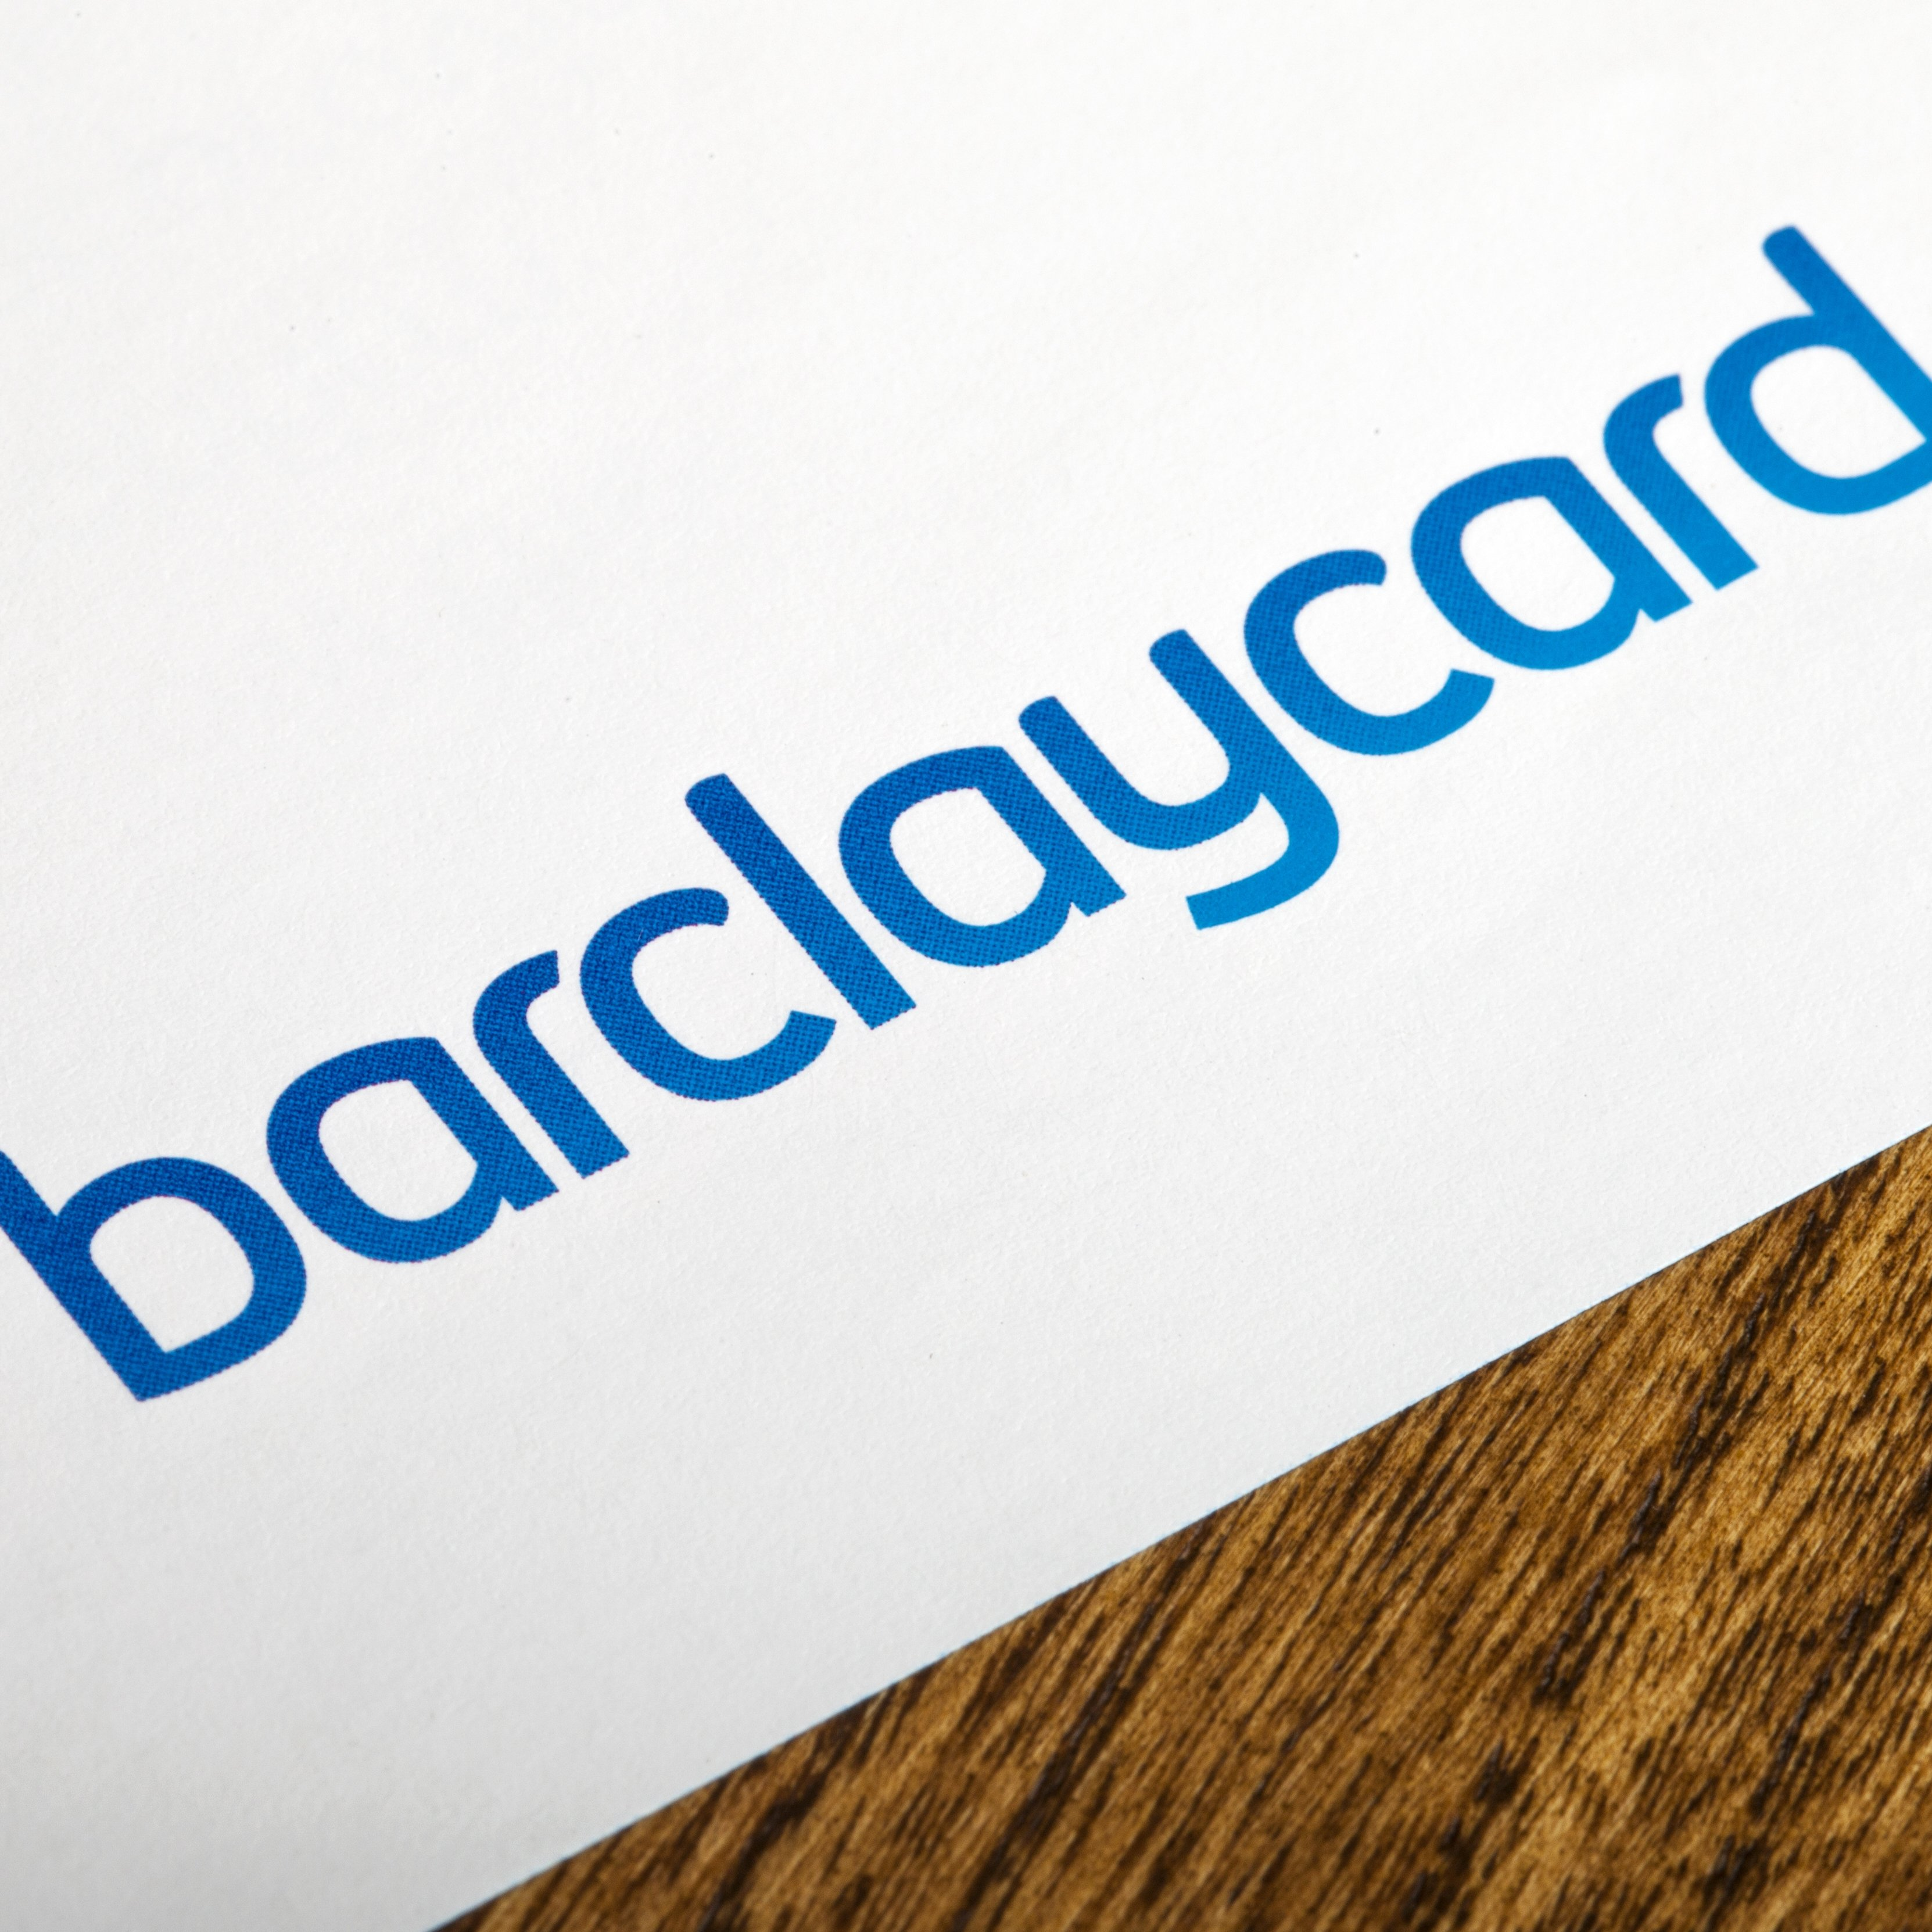 Barclaycard unexpectedly cuts credit limits by £1,000s - what to do if you're affected